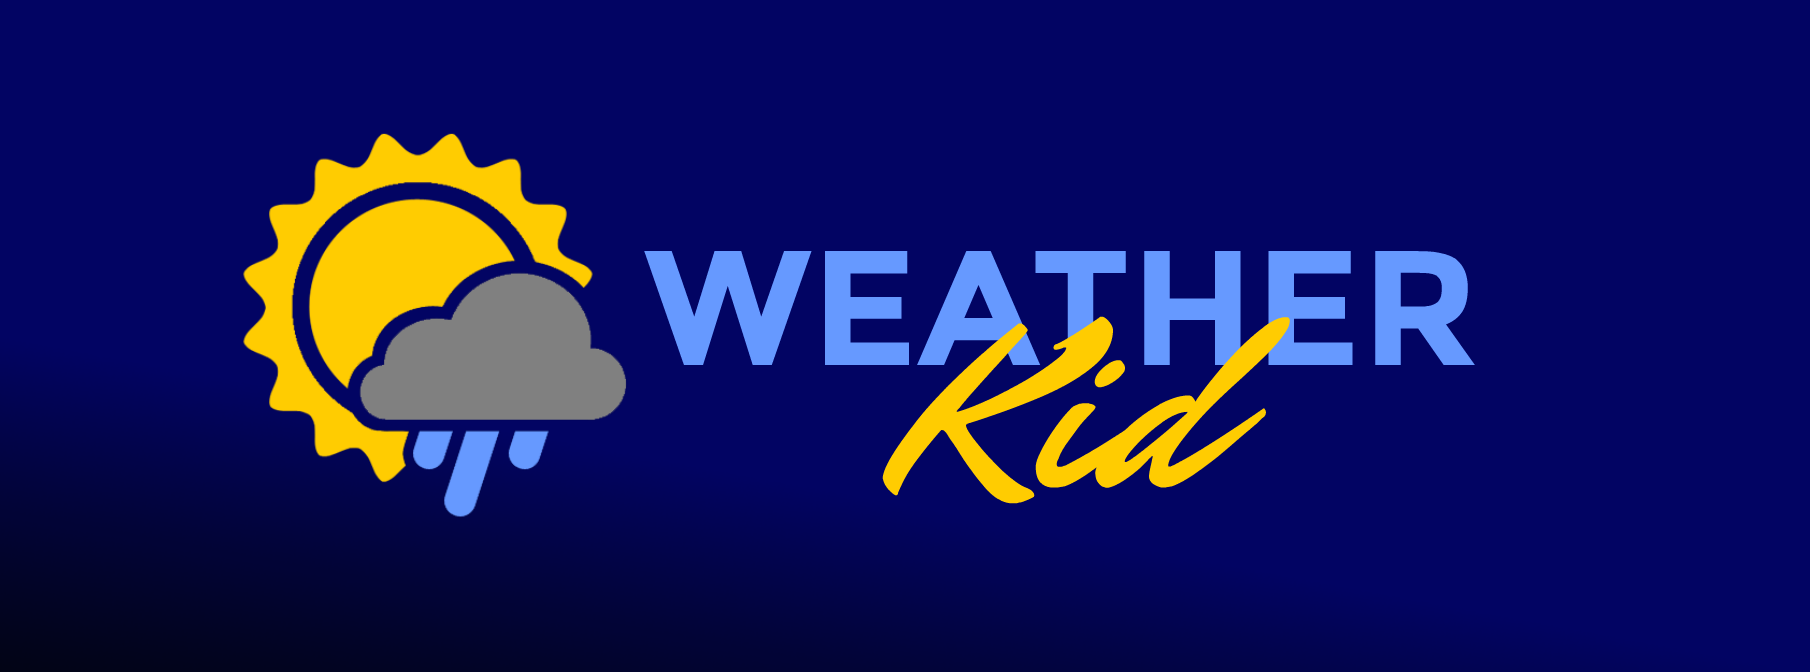 Feature: http://www.hot1055fm.com/weather-kid/